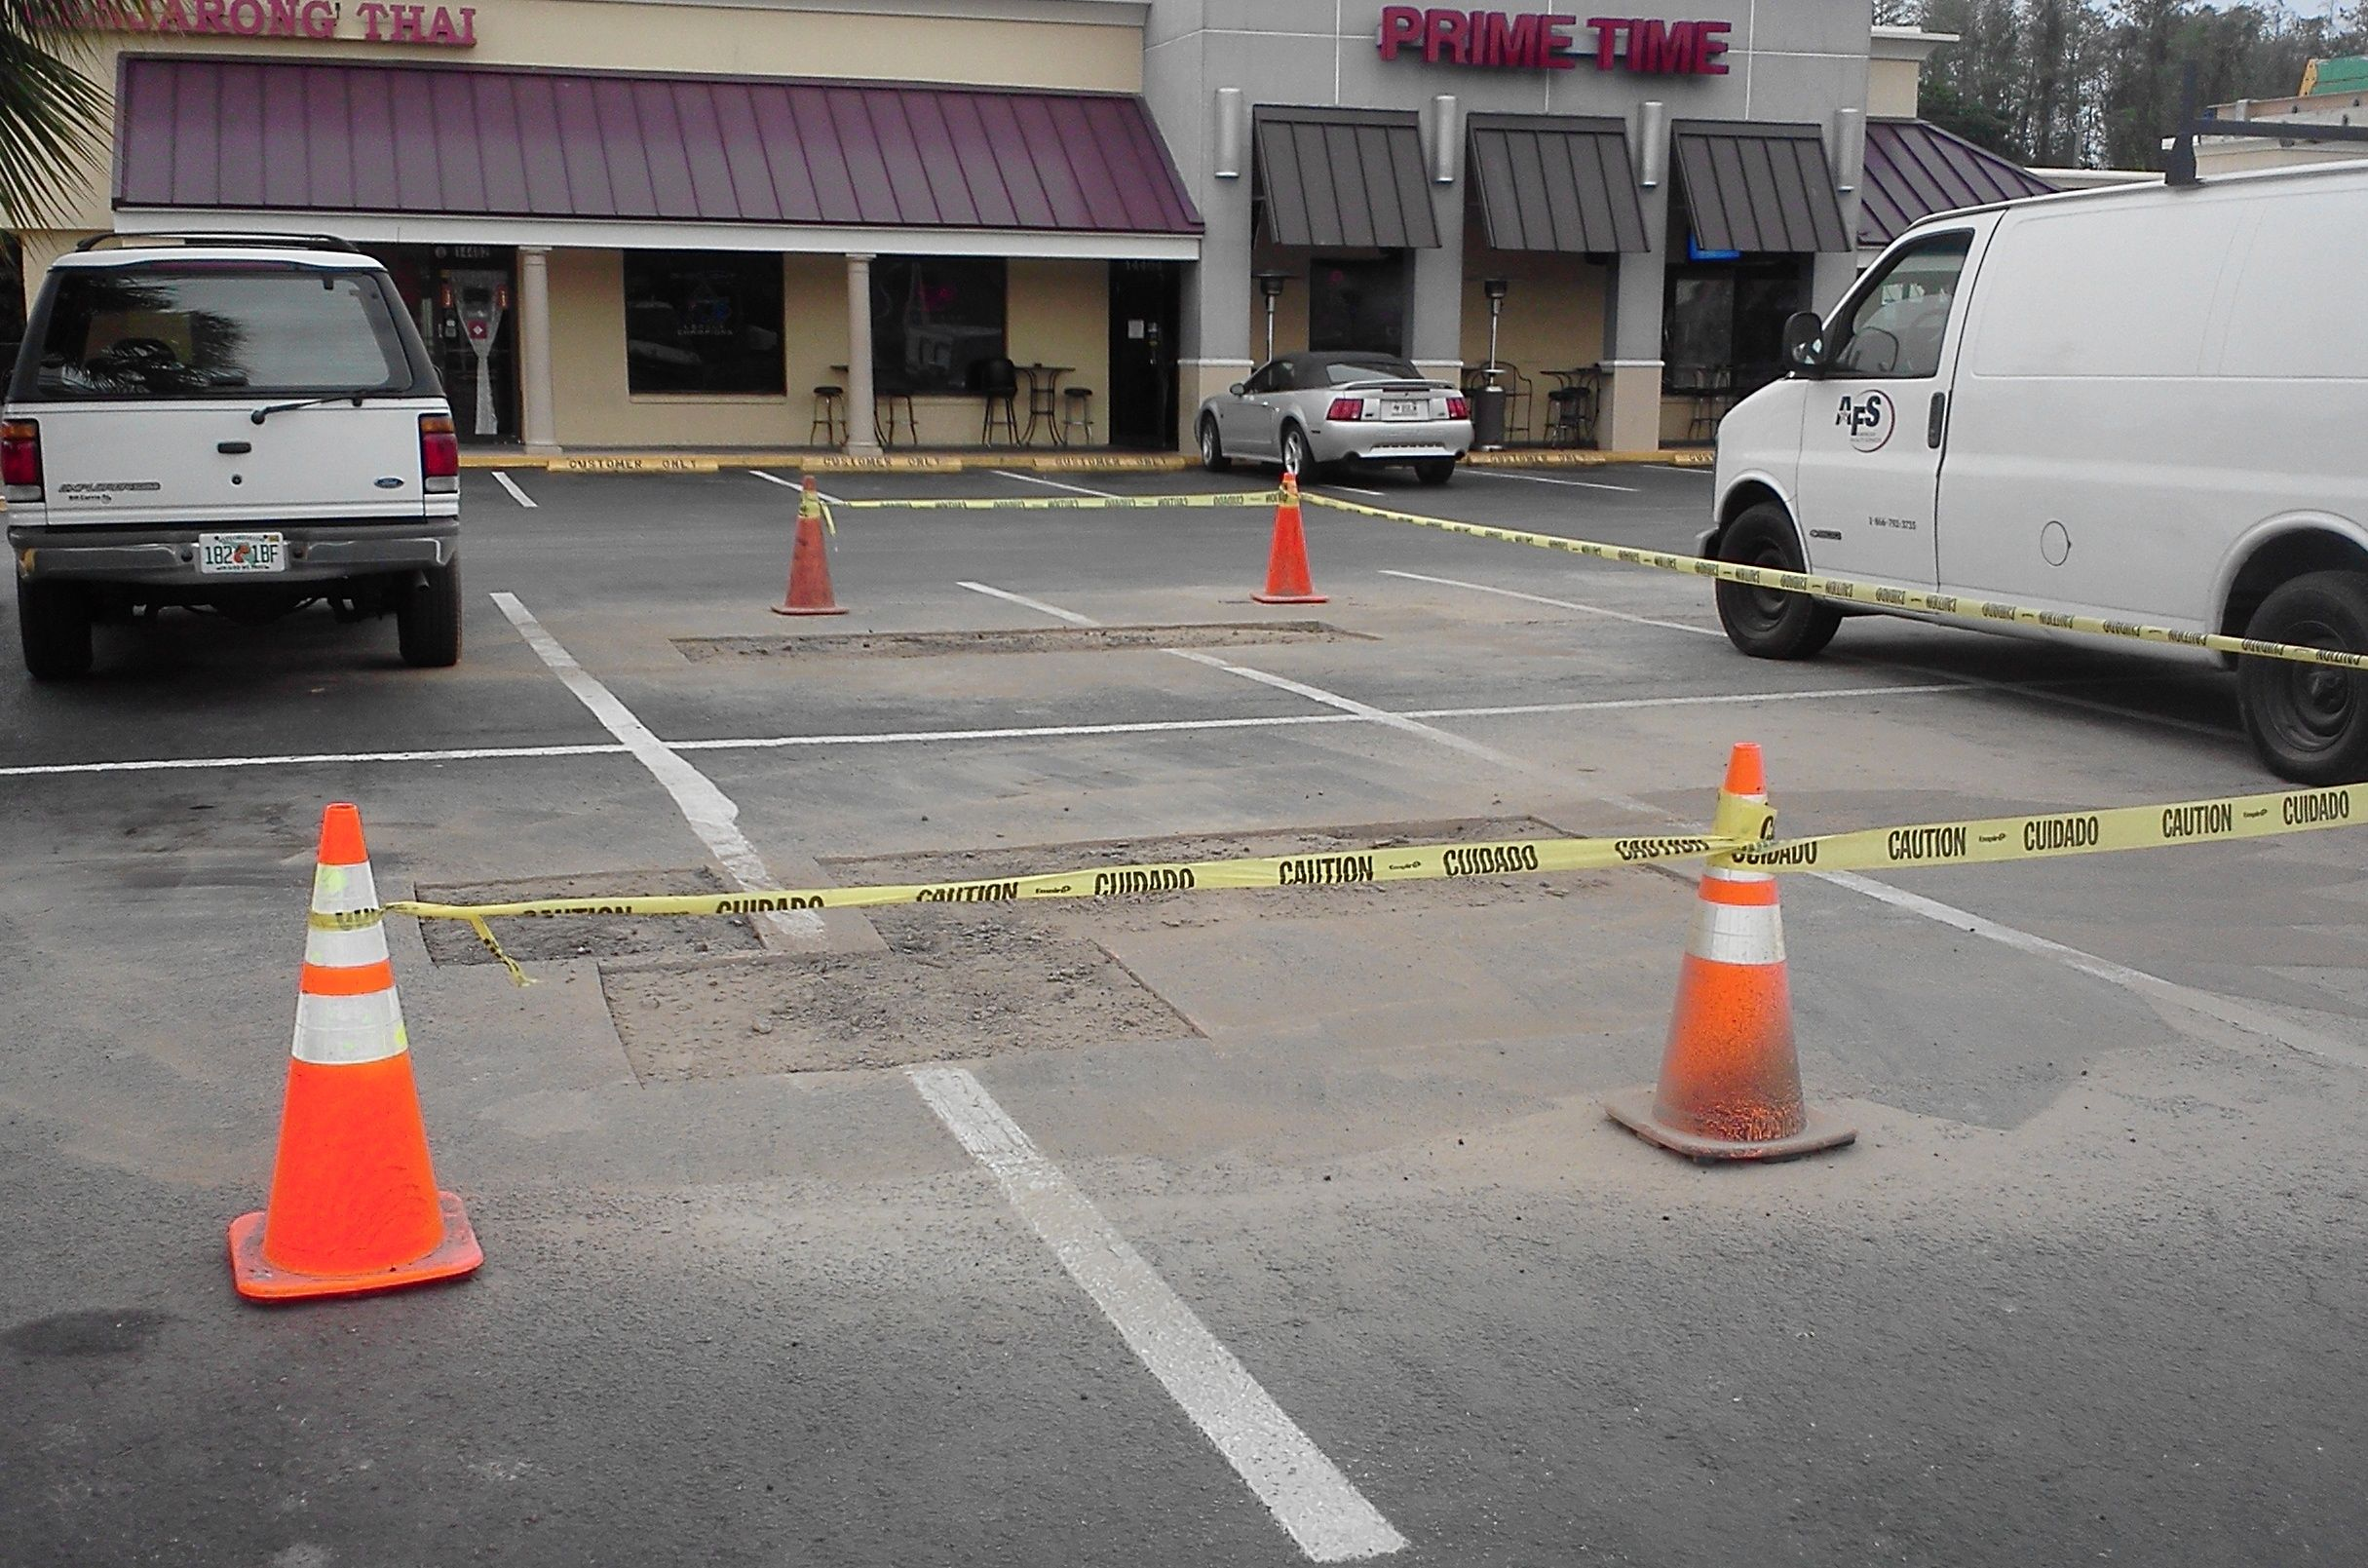 Pothole Repairs Cut And Patch Job Paving And Sealcoating Asphalt Repair Asphalt Pavement Pavement